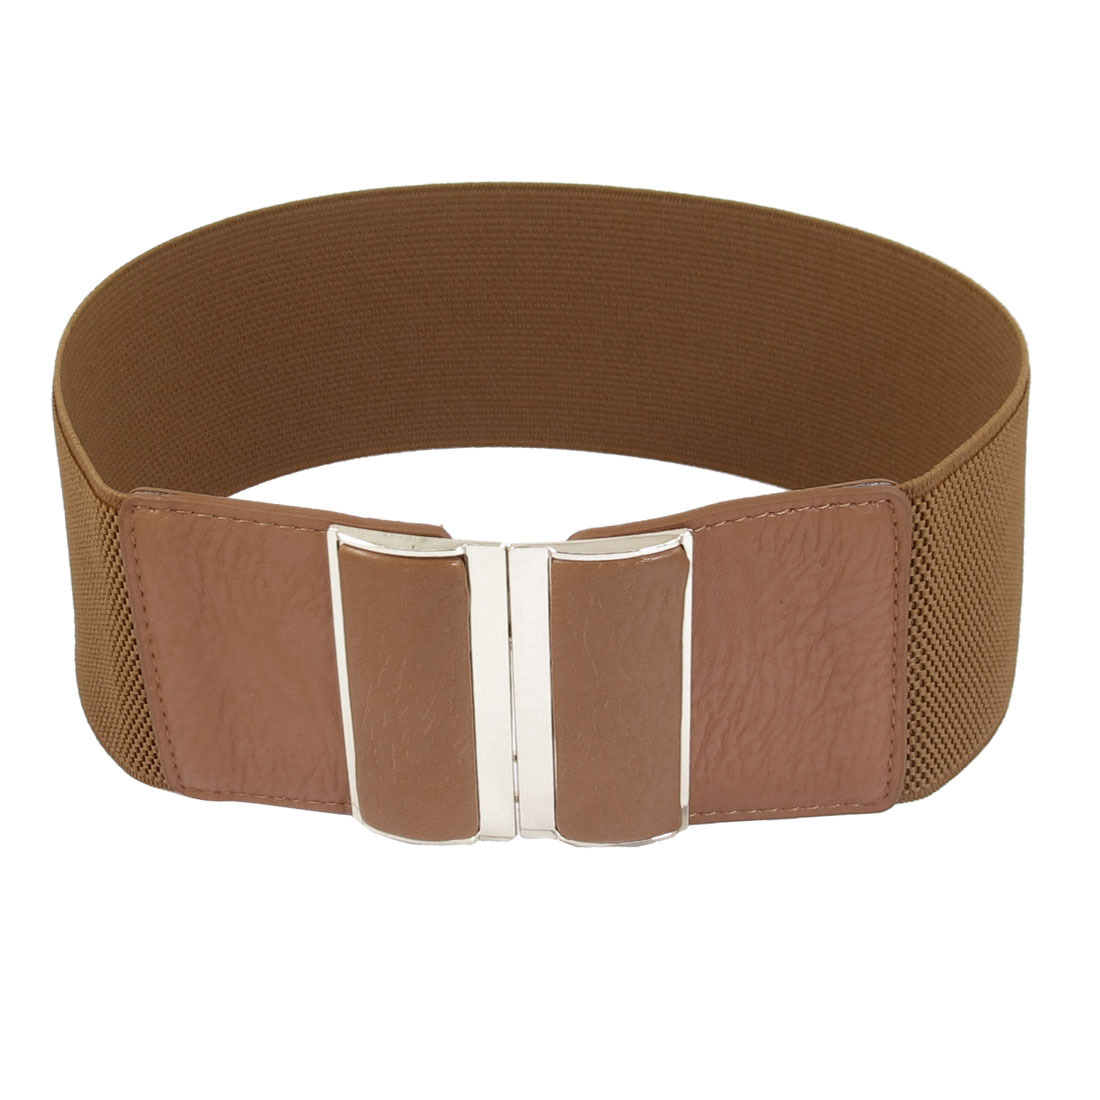 Brown Faux Leather Elastic Band Interlocking Buckle Waist Belt 3 Inches Width for Lady